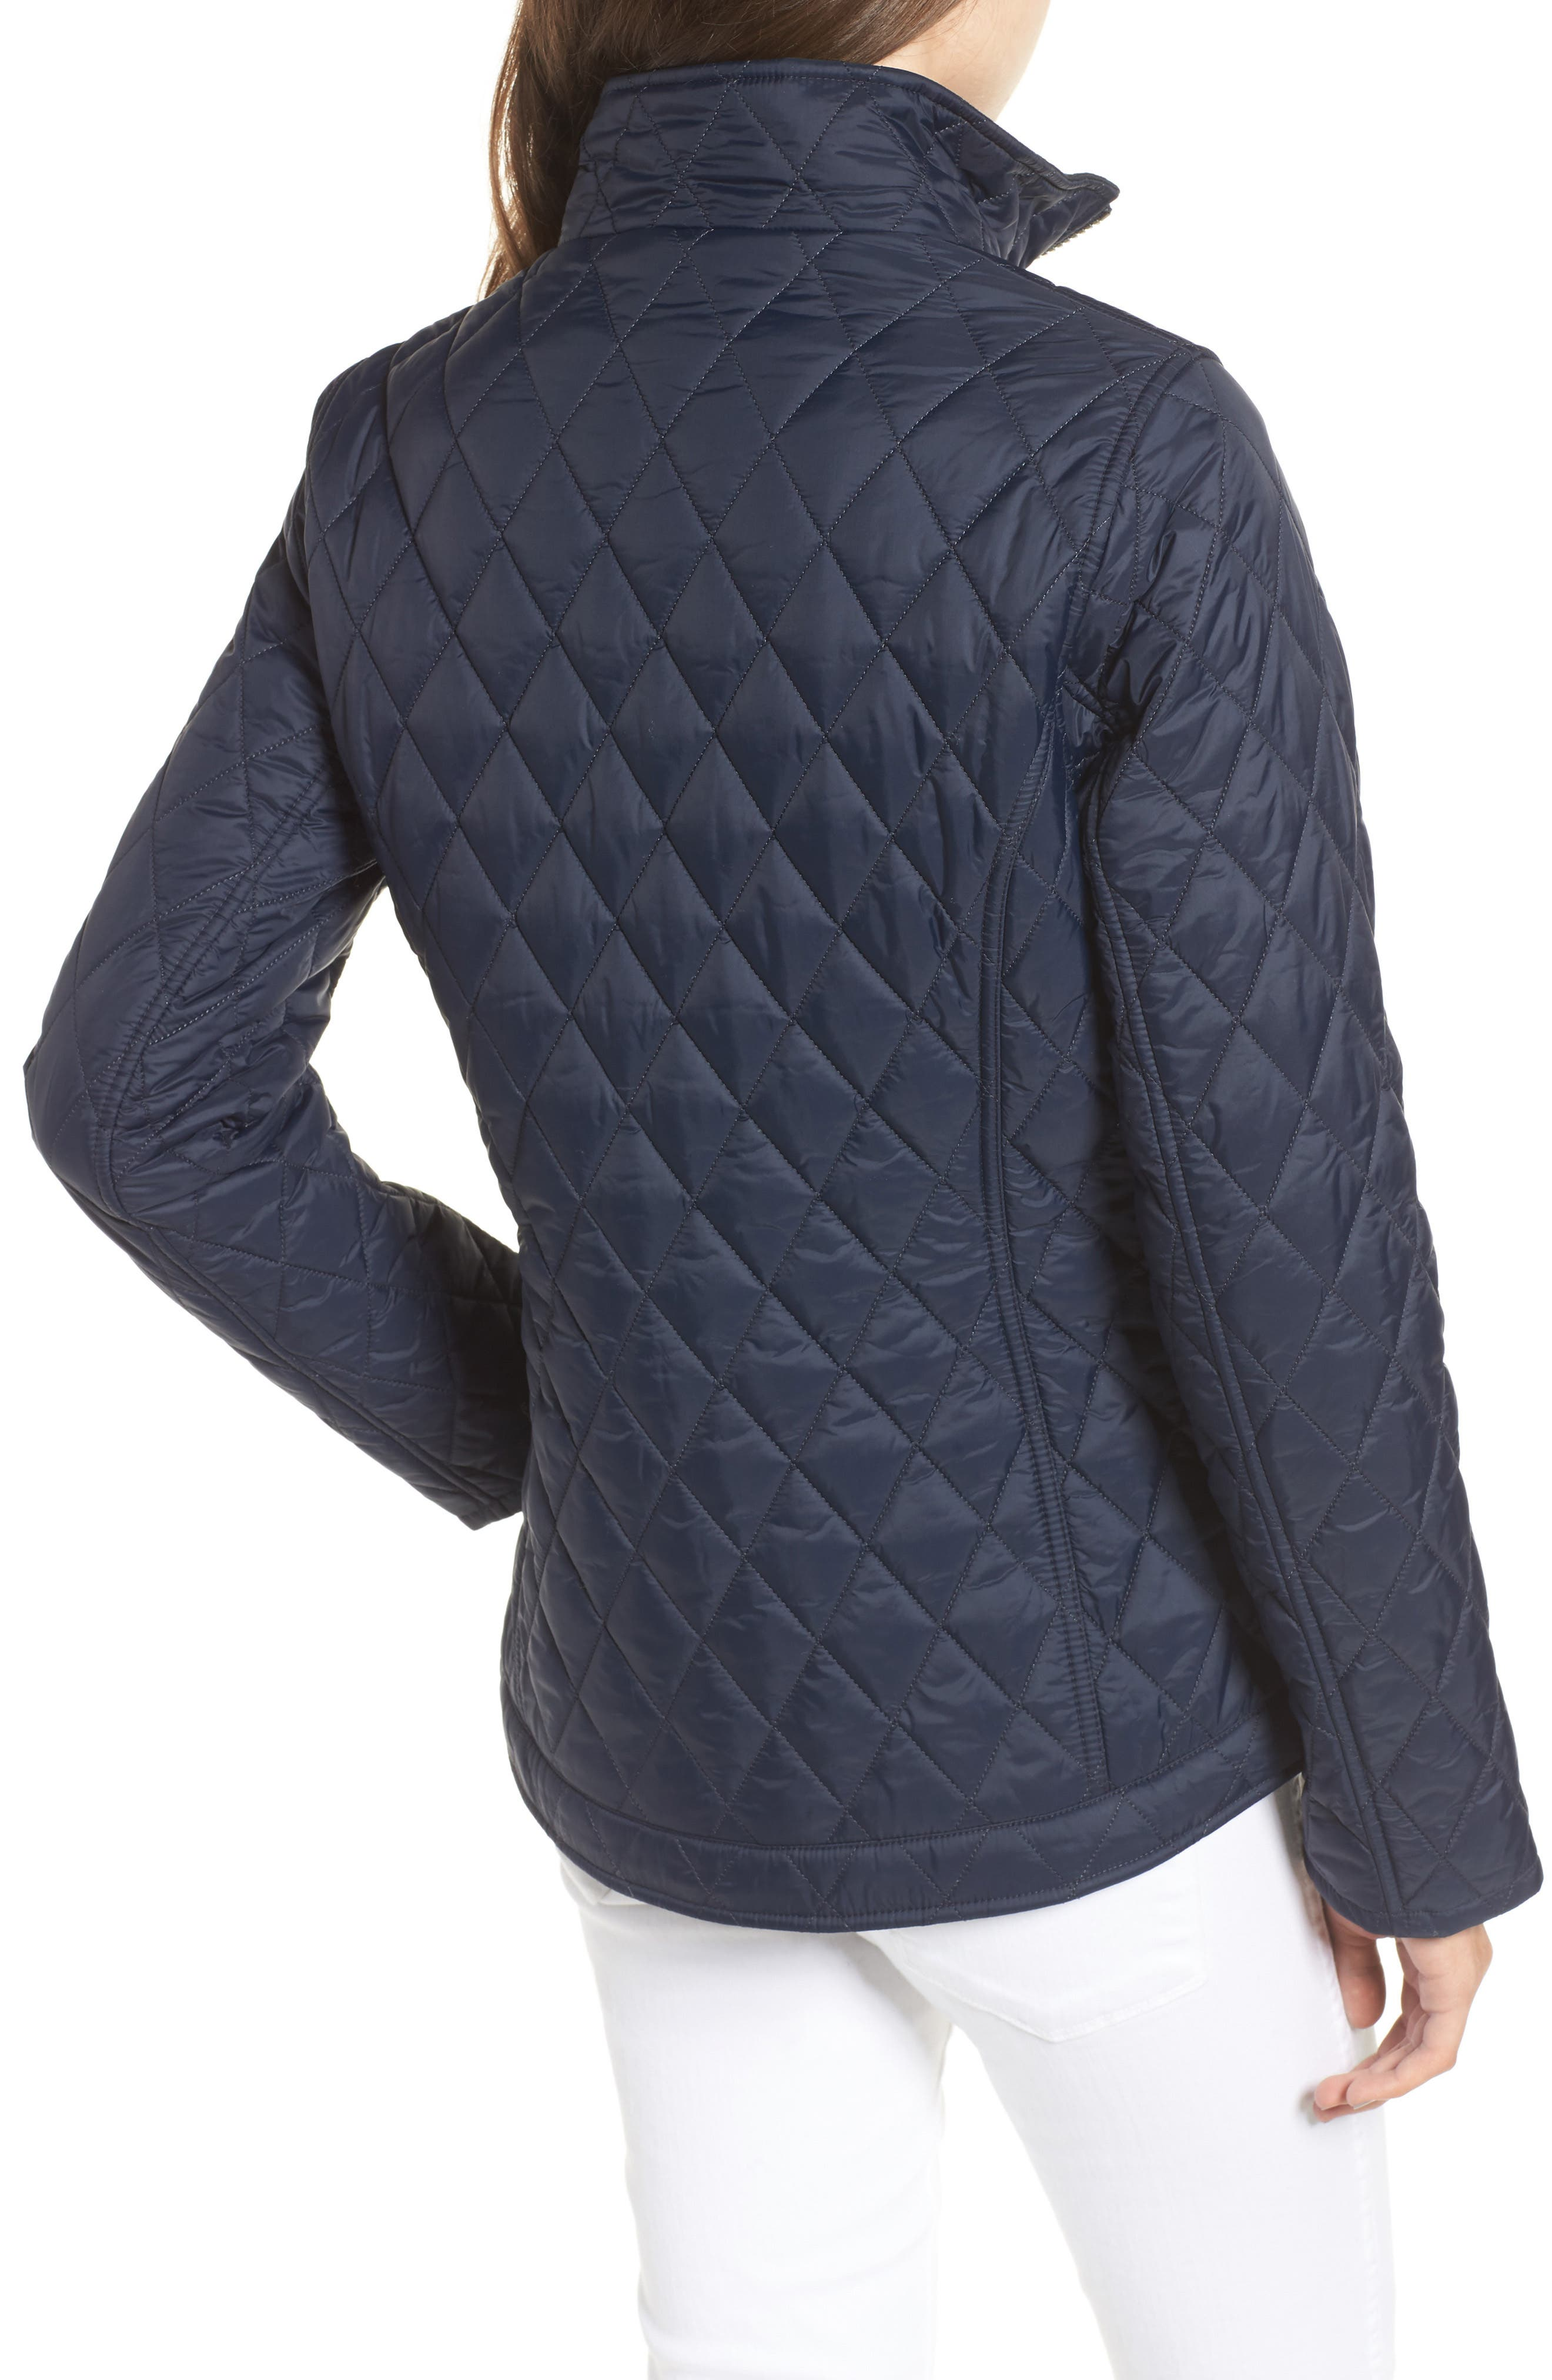 Dolostone Quilted Jacket,                             Alternate thumbnail 6, color,